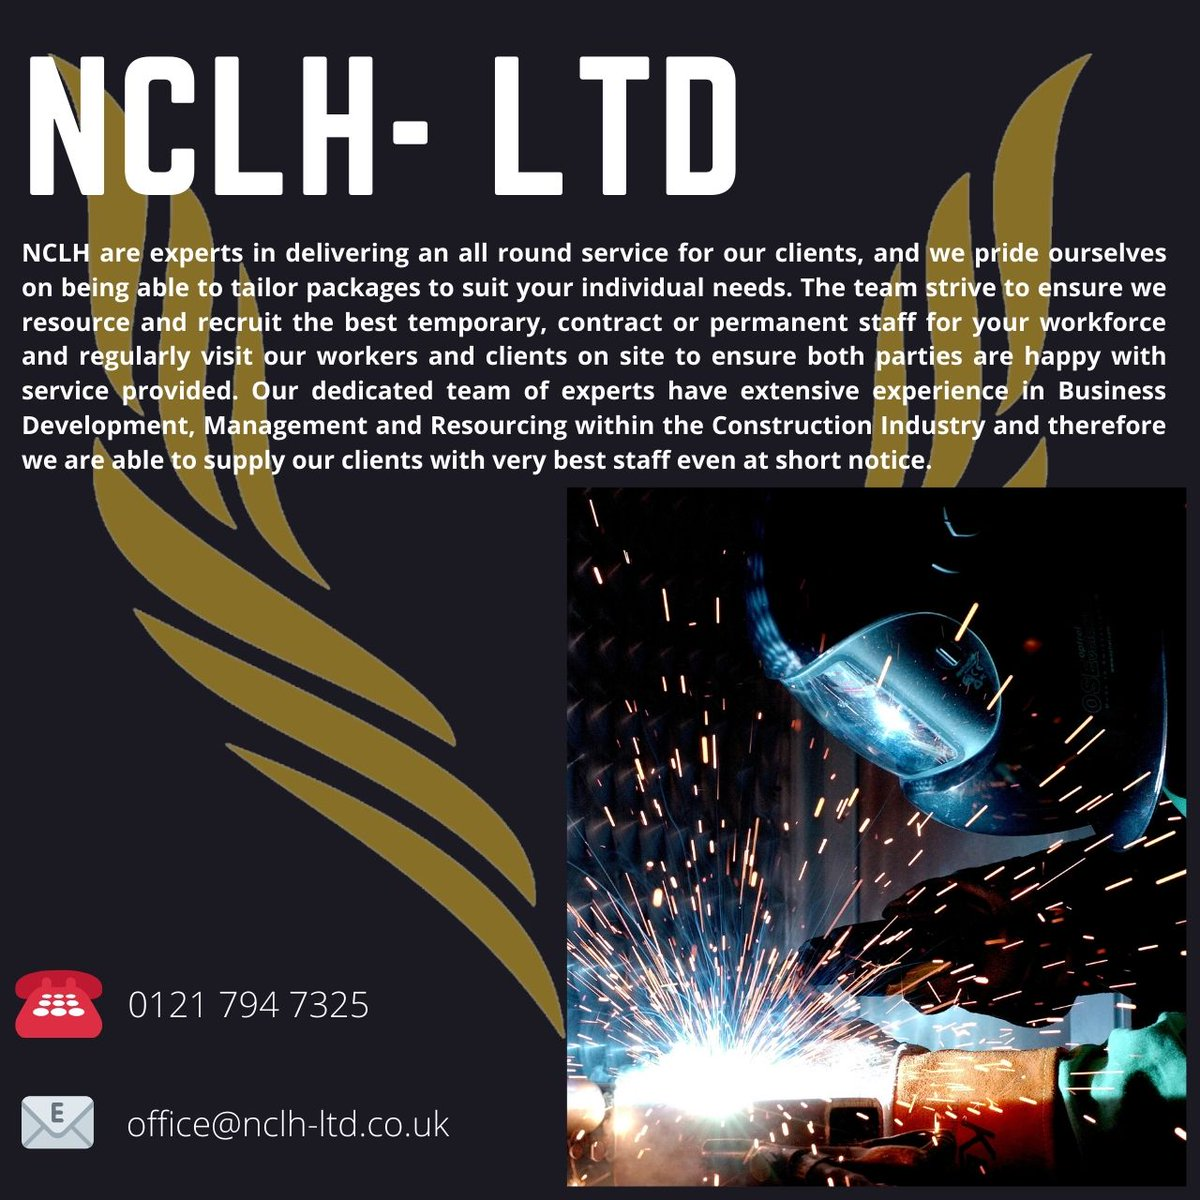 NCLH- LTD specializes in the supply of temporary and contract staff across a variety of industries, get in touch today for more information   #nclhltd #tempstaff #recruitment #constructionrecruitment #sitework #nationwidelabourhire #constructionworker #constructionUK #newjobpic.twitter.com/efPmAkJv8Z